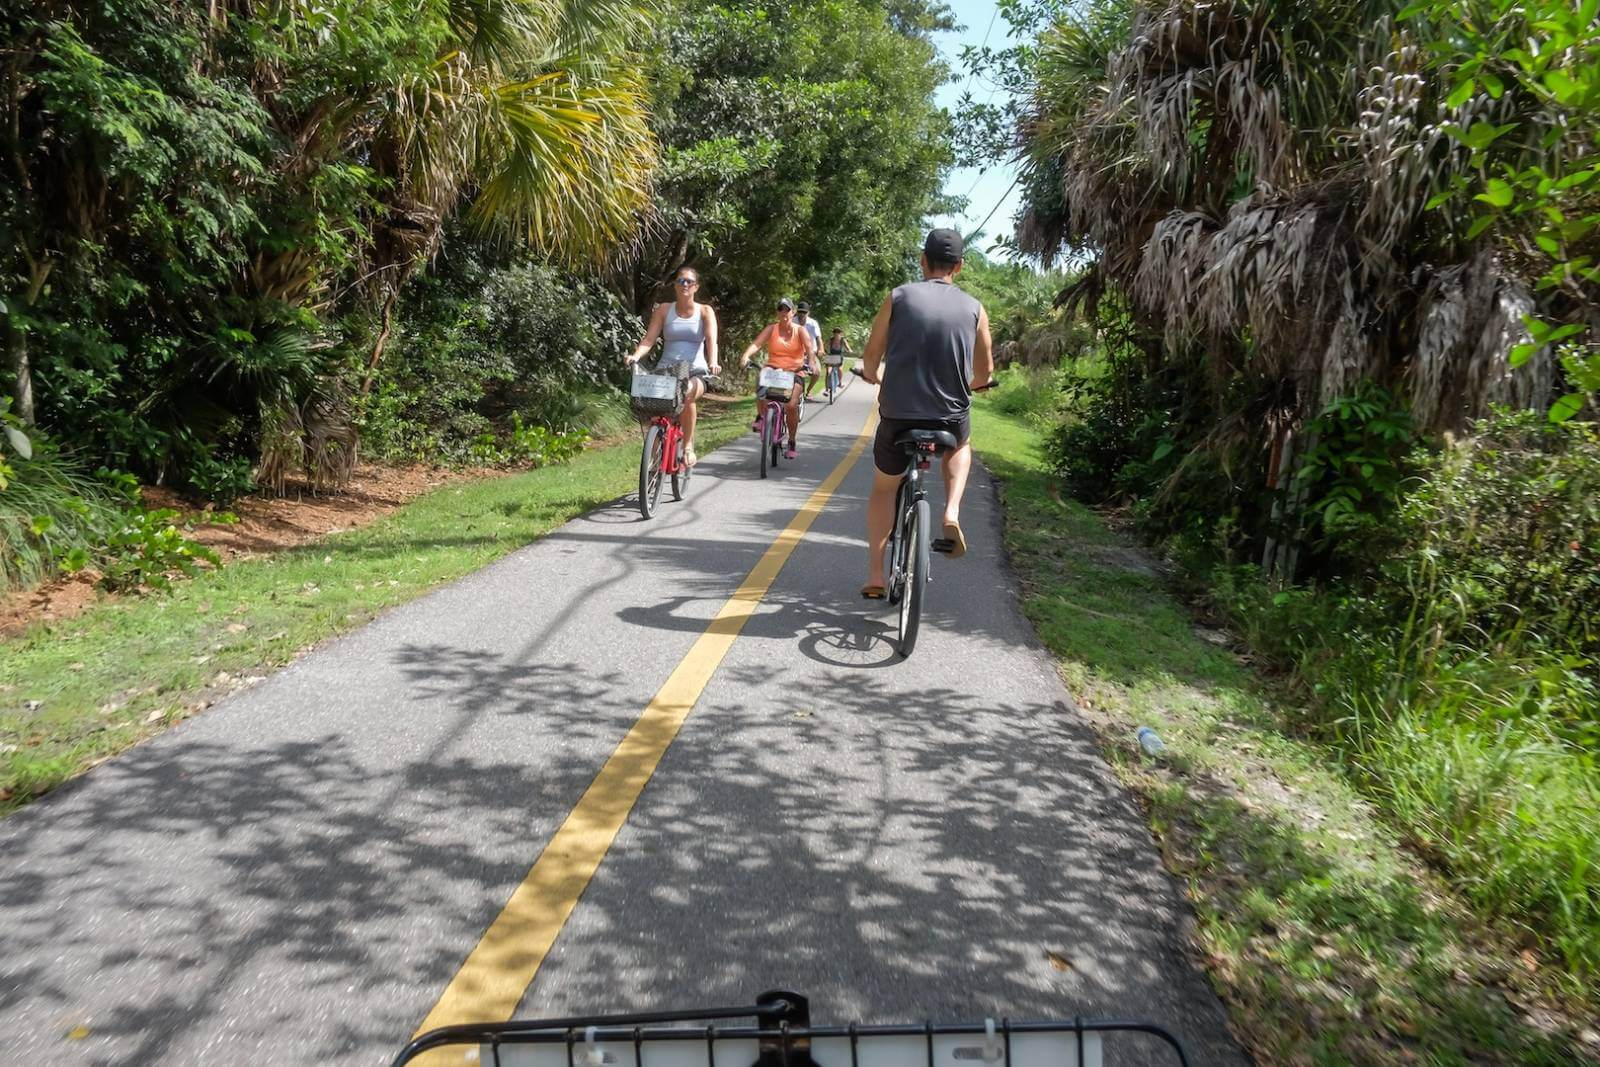 The best way to get around Sanibel Island, Florida is by renting bicycles and exploring the Island along shady bike paths. Photo by Mary Carol Fitzgerald. Must Do Visitor Guides, MustDo.com